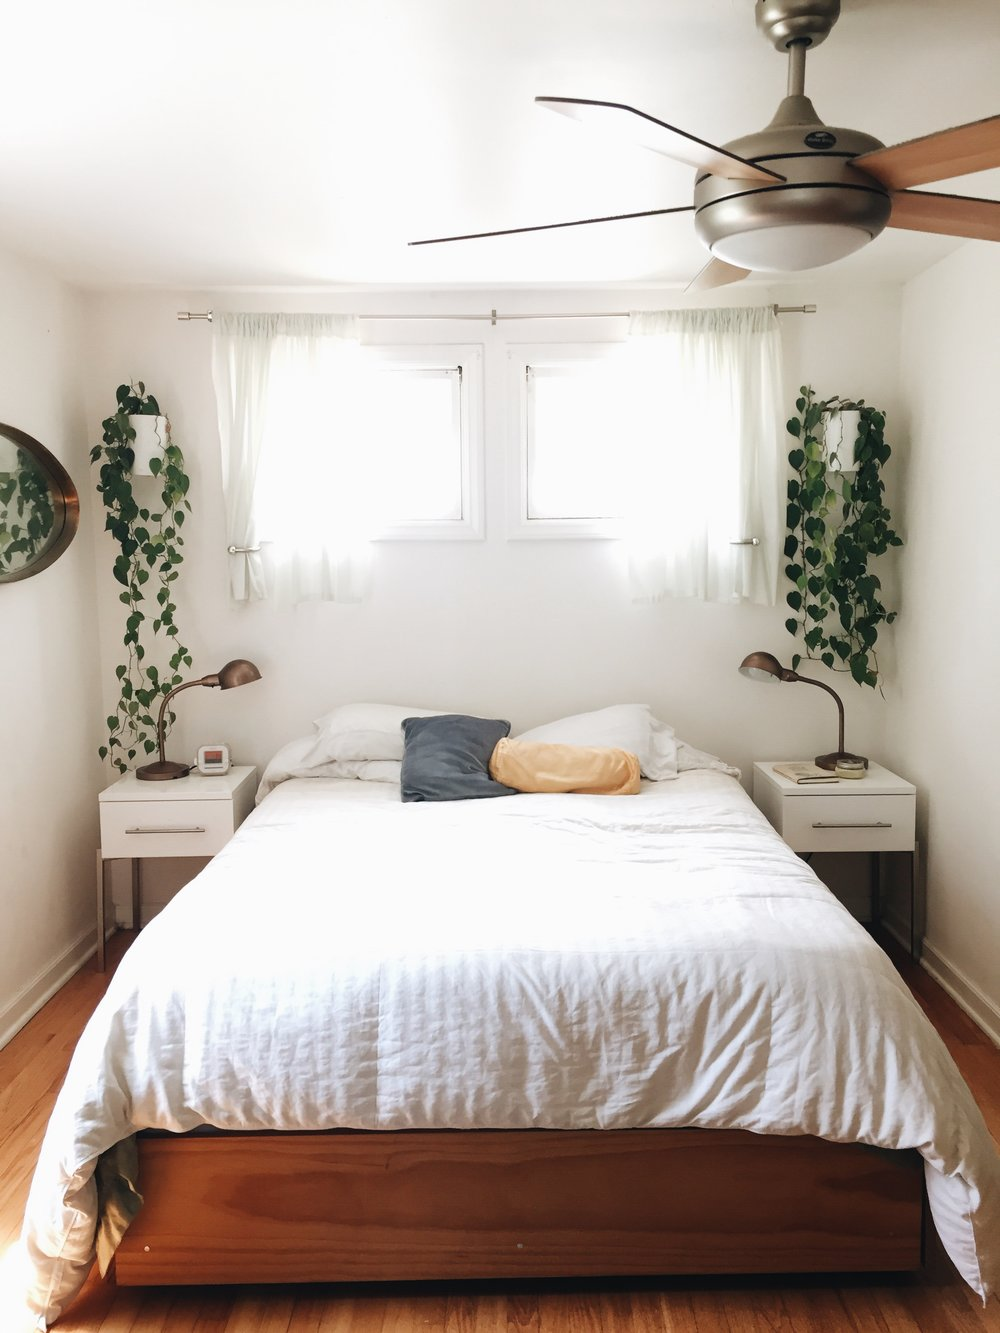 Home tour bev weidner the school of styling for Minimalist bedroom on a budget